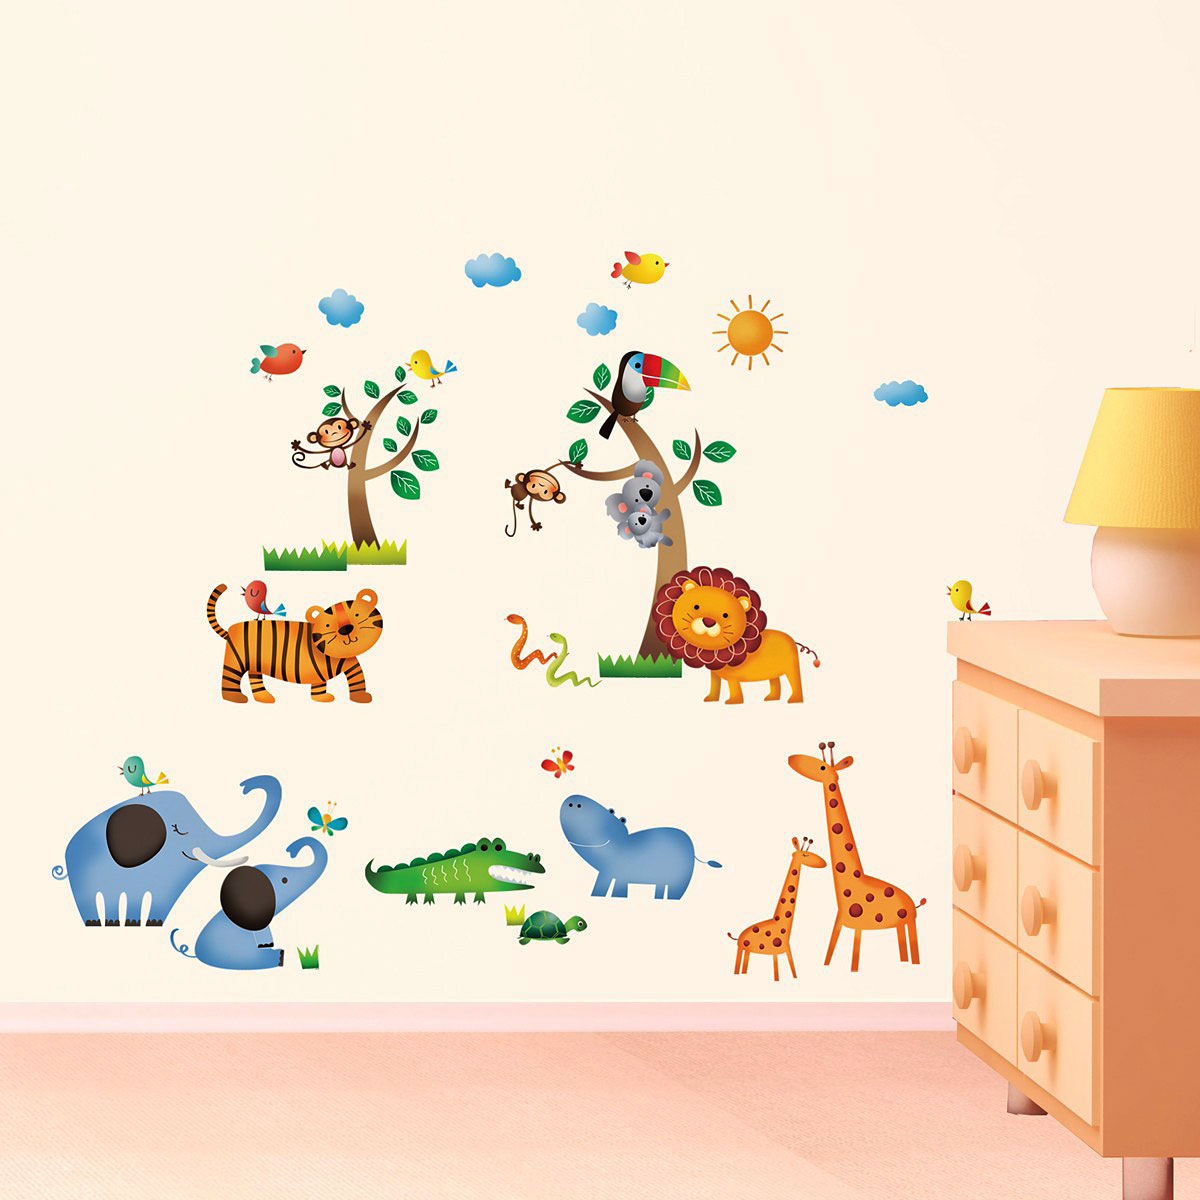 wandsticker wandpuzzle wandtattoo dschungel safari tiere www 4. Black Bedroom Furniture Sets. Home Design Ideas